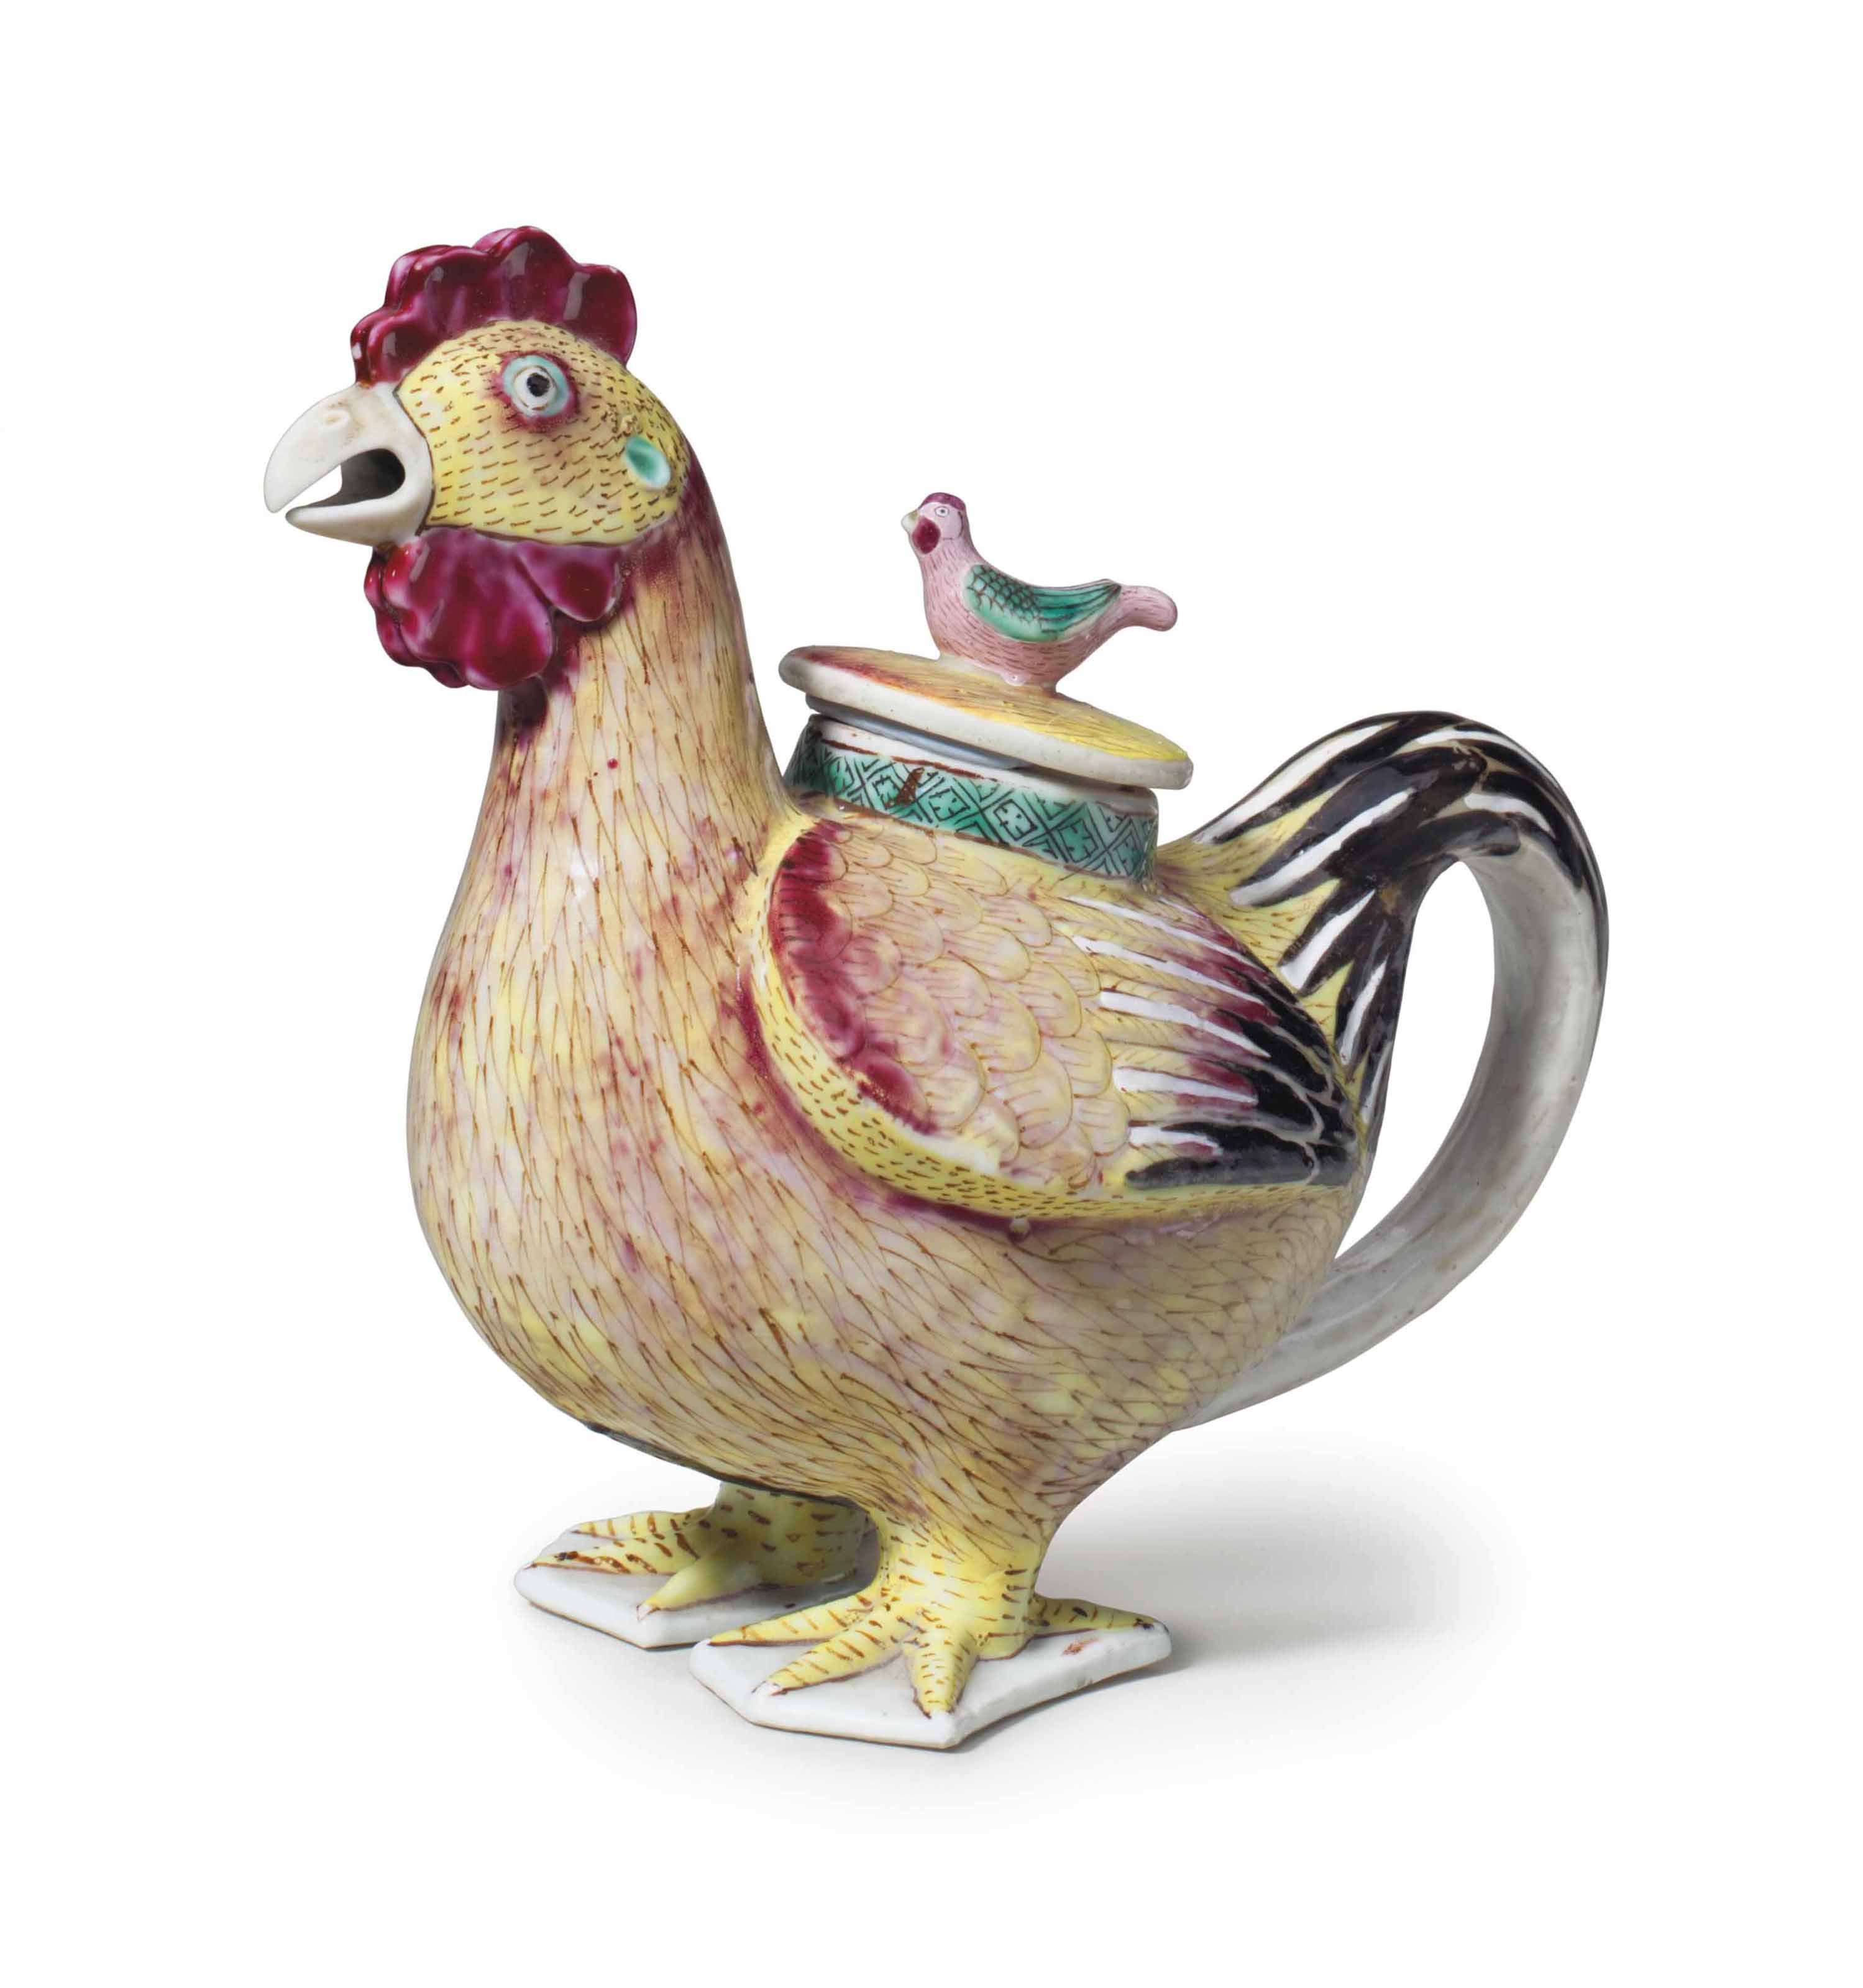 A RARE ROOSTER WINE POT AND CO